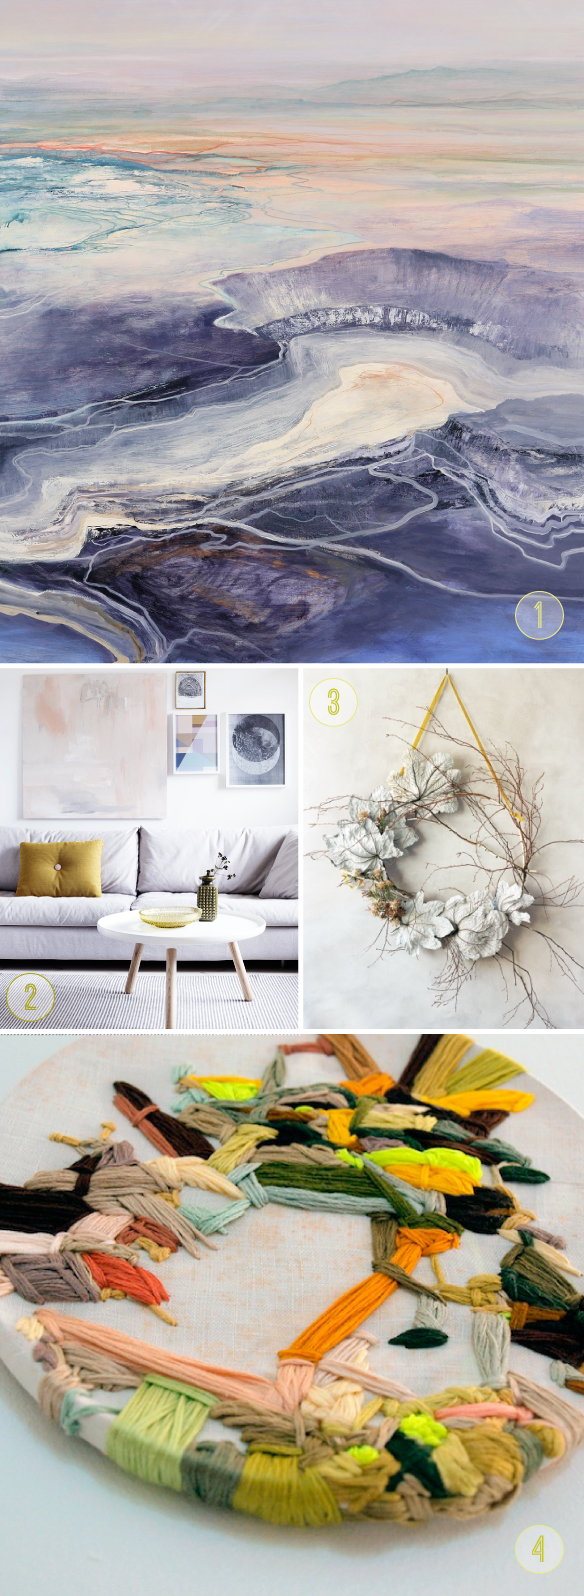 Beautiful Hello Blog Inspiration Board Rest and Beauty